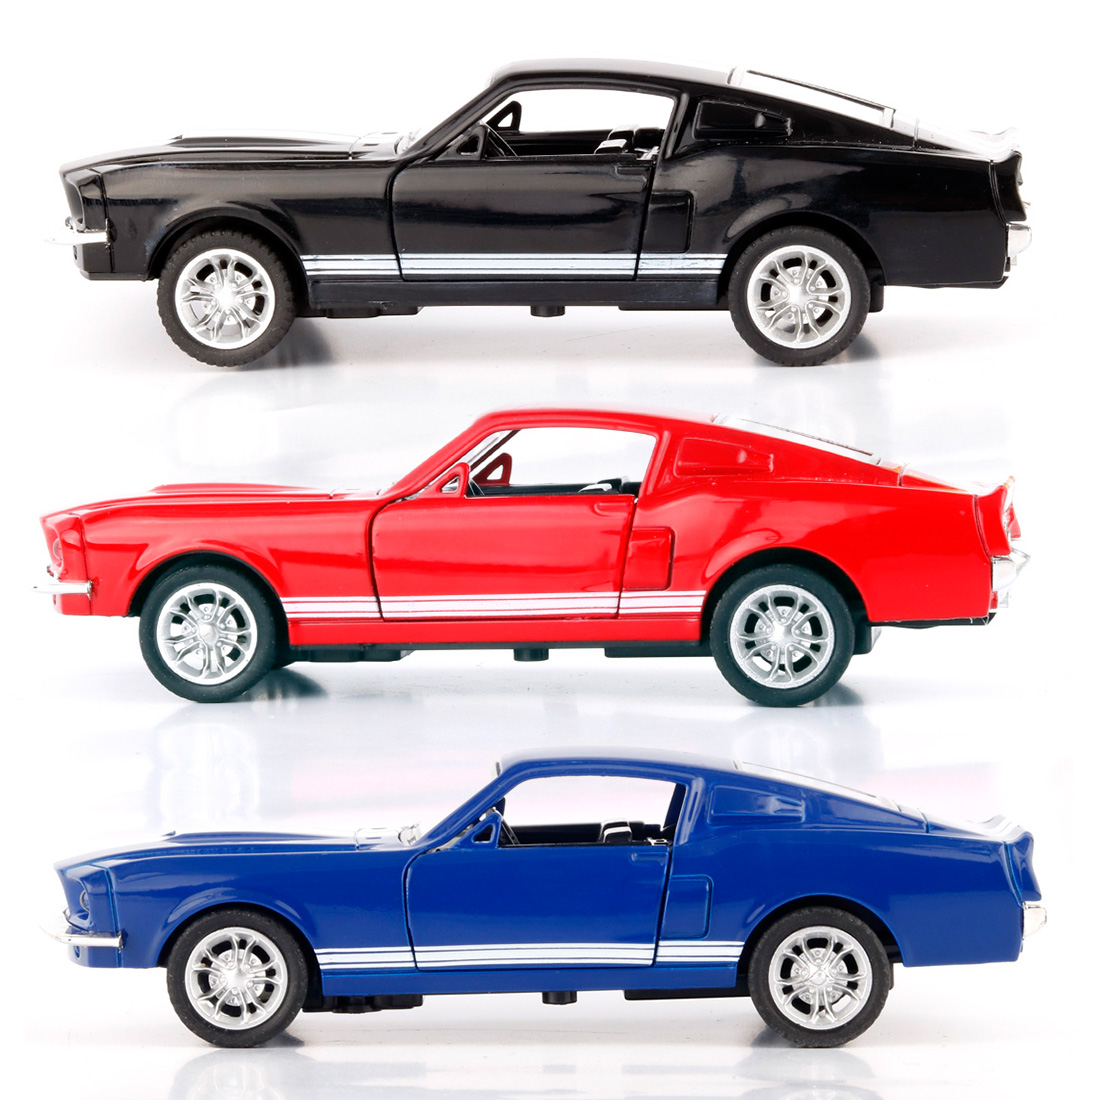 US$ 2.11 - JMT Brand Car GT500 1:32 Alloy Diecast Metal Pull Back ...